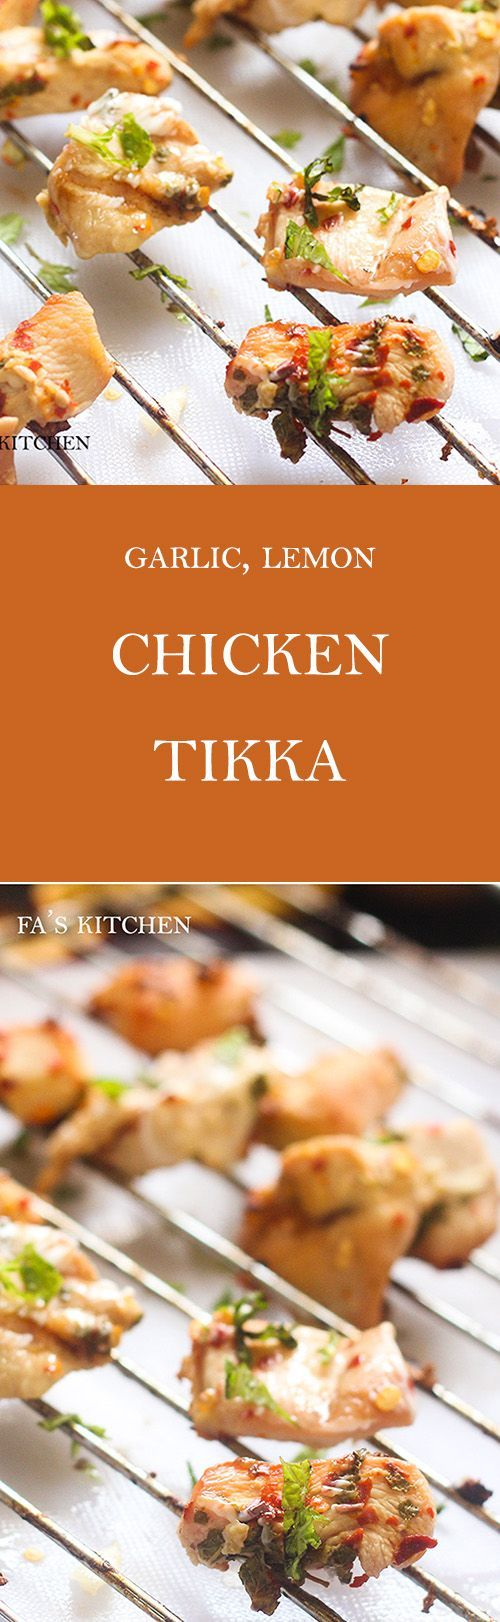 Garlic Lemon Chicken Tikka recipe, a great starter that is simply mouth watering. It is so delicious and drooling that you will never have enough of it.